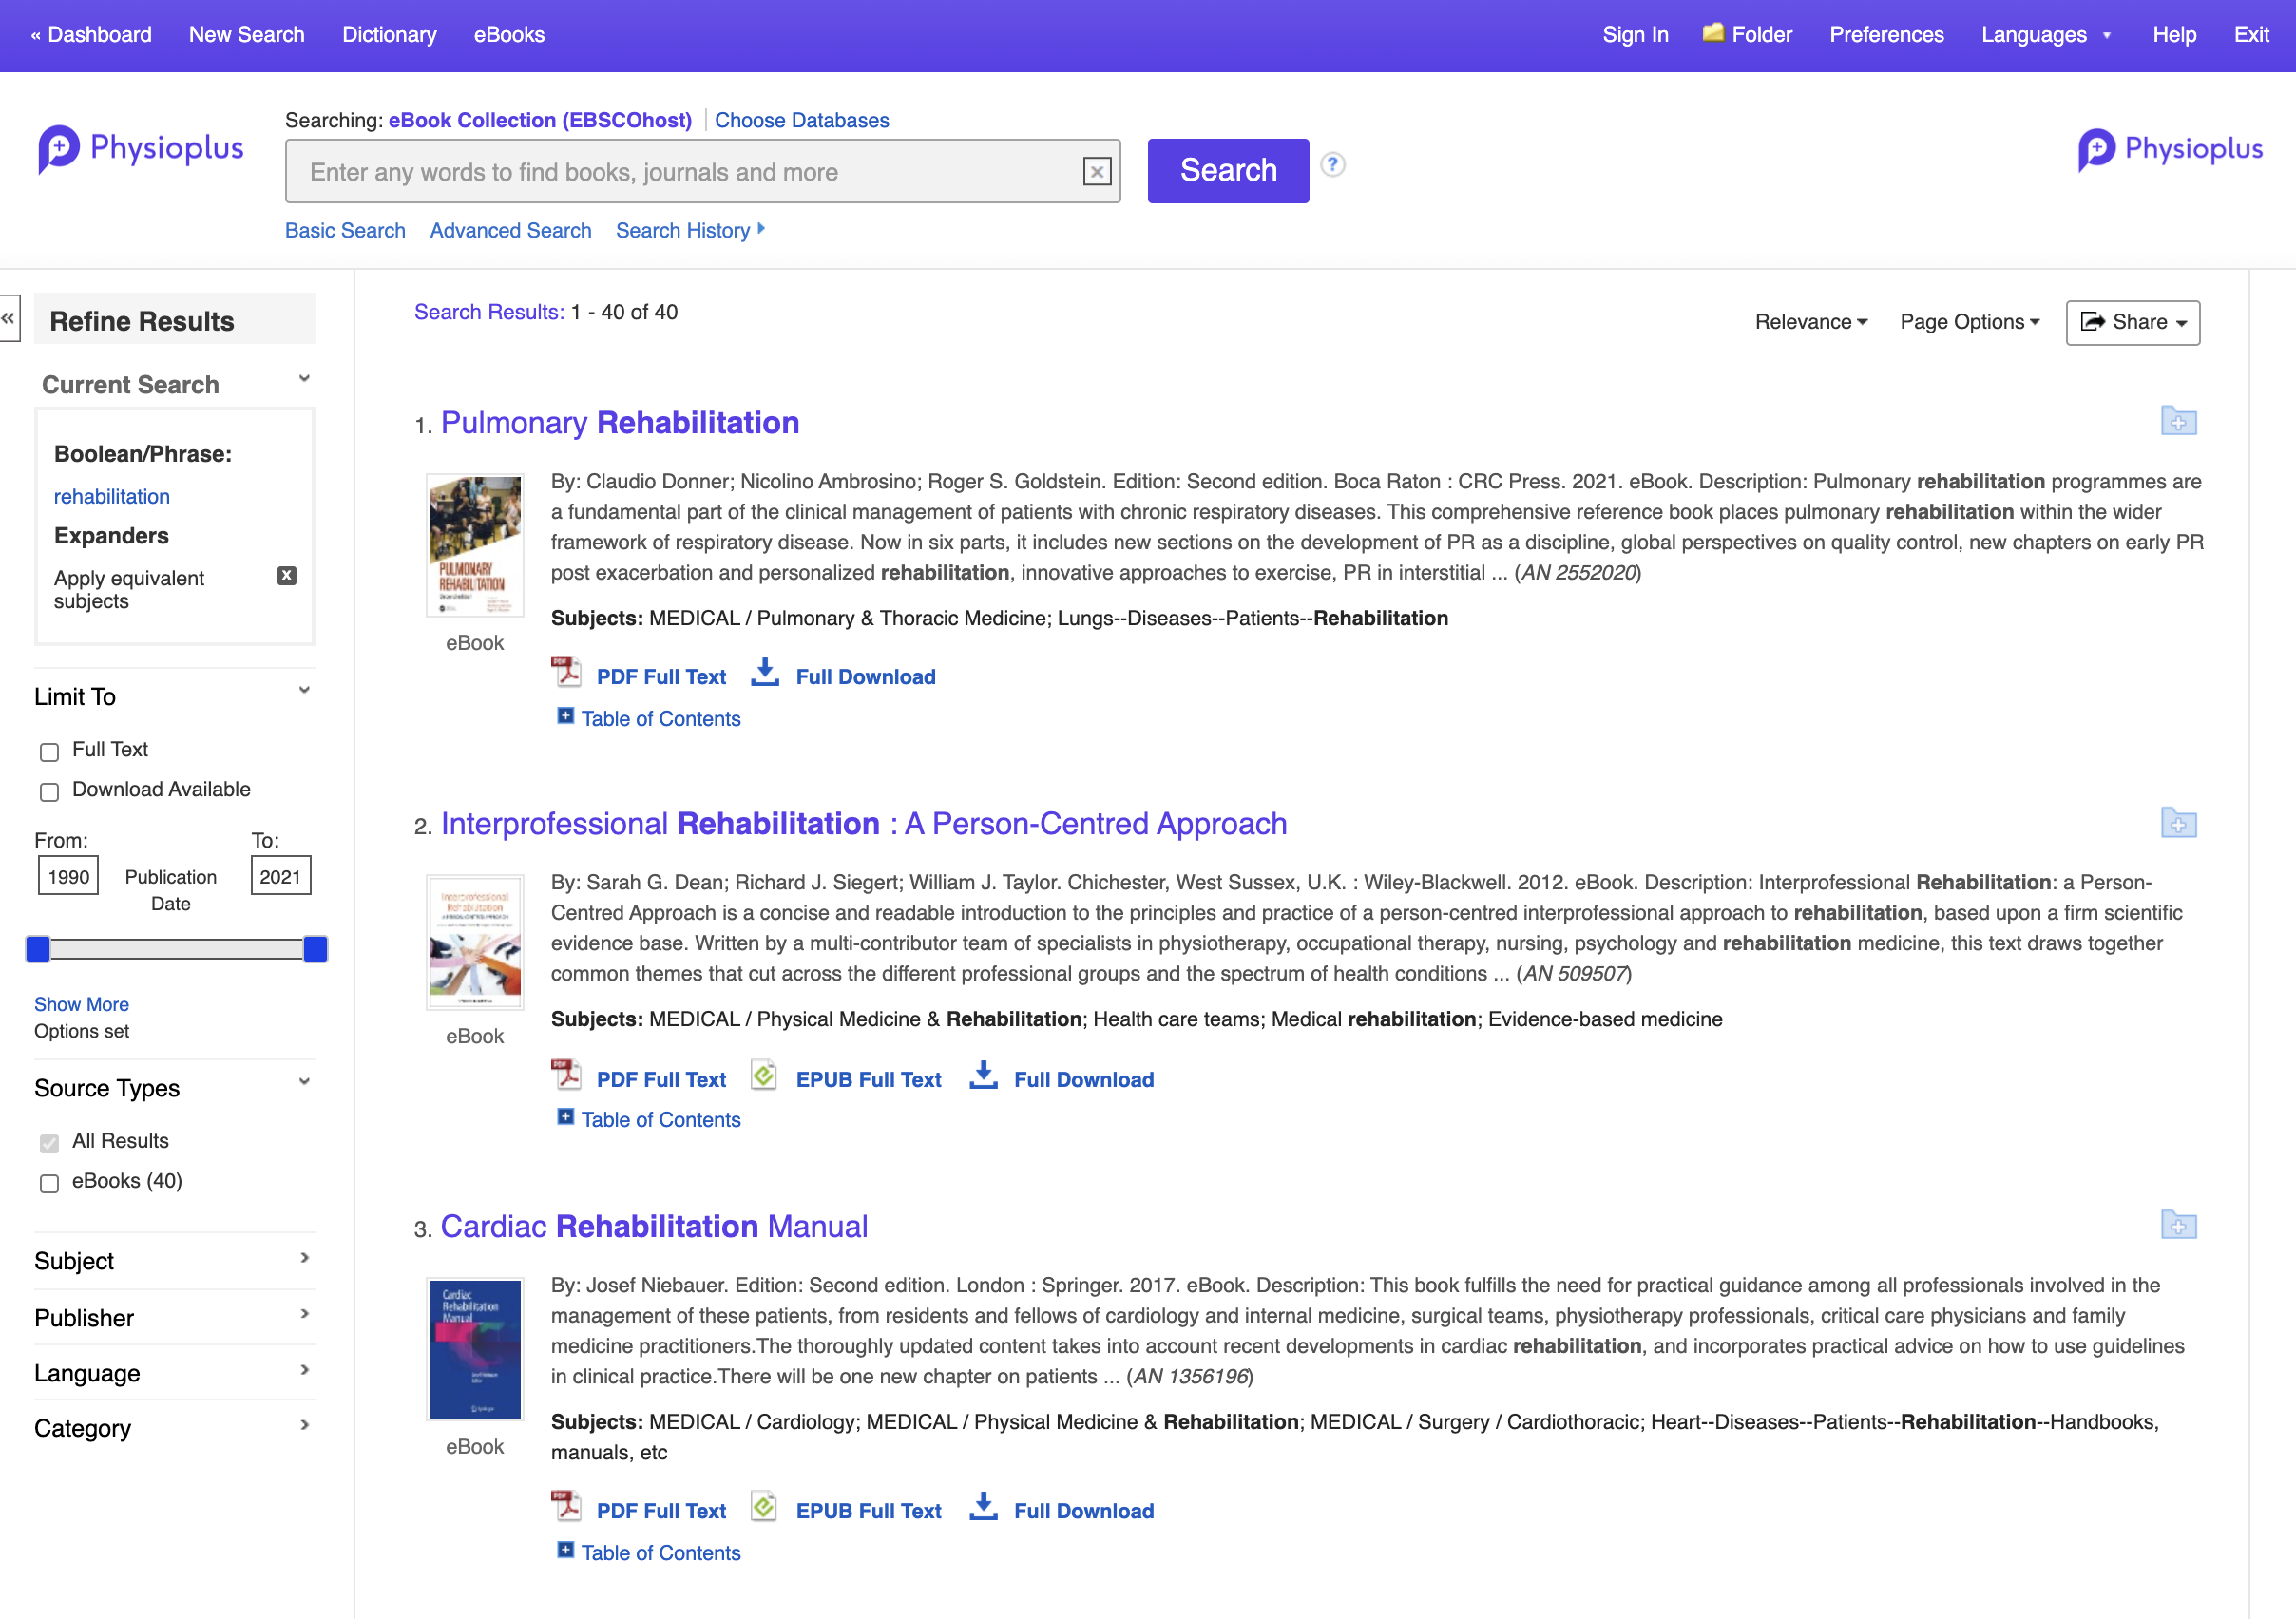 Online books and journal articles for physiotherapy and physical therapy